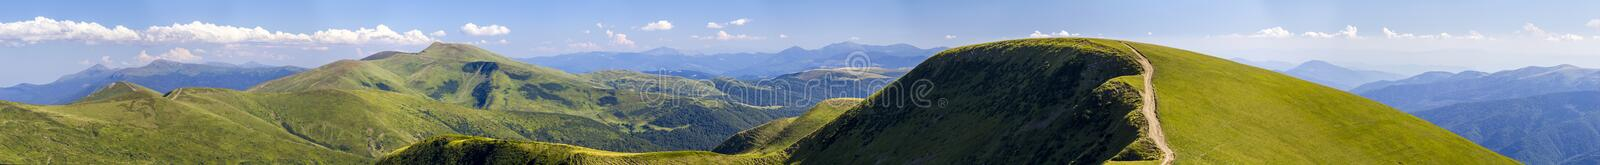 Panorama of green hills in summer mountains with gravel road for stock photo